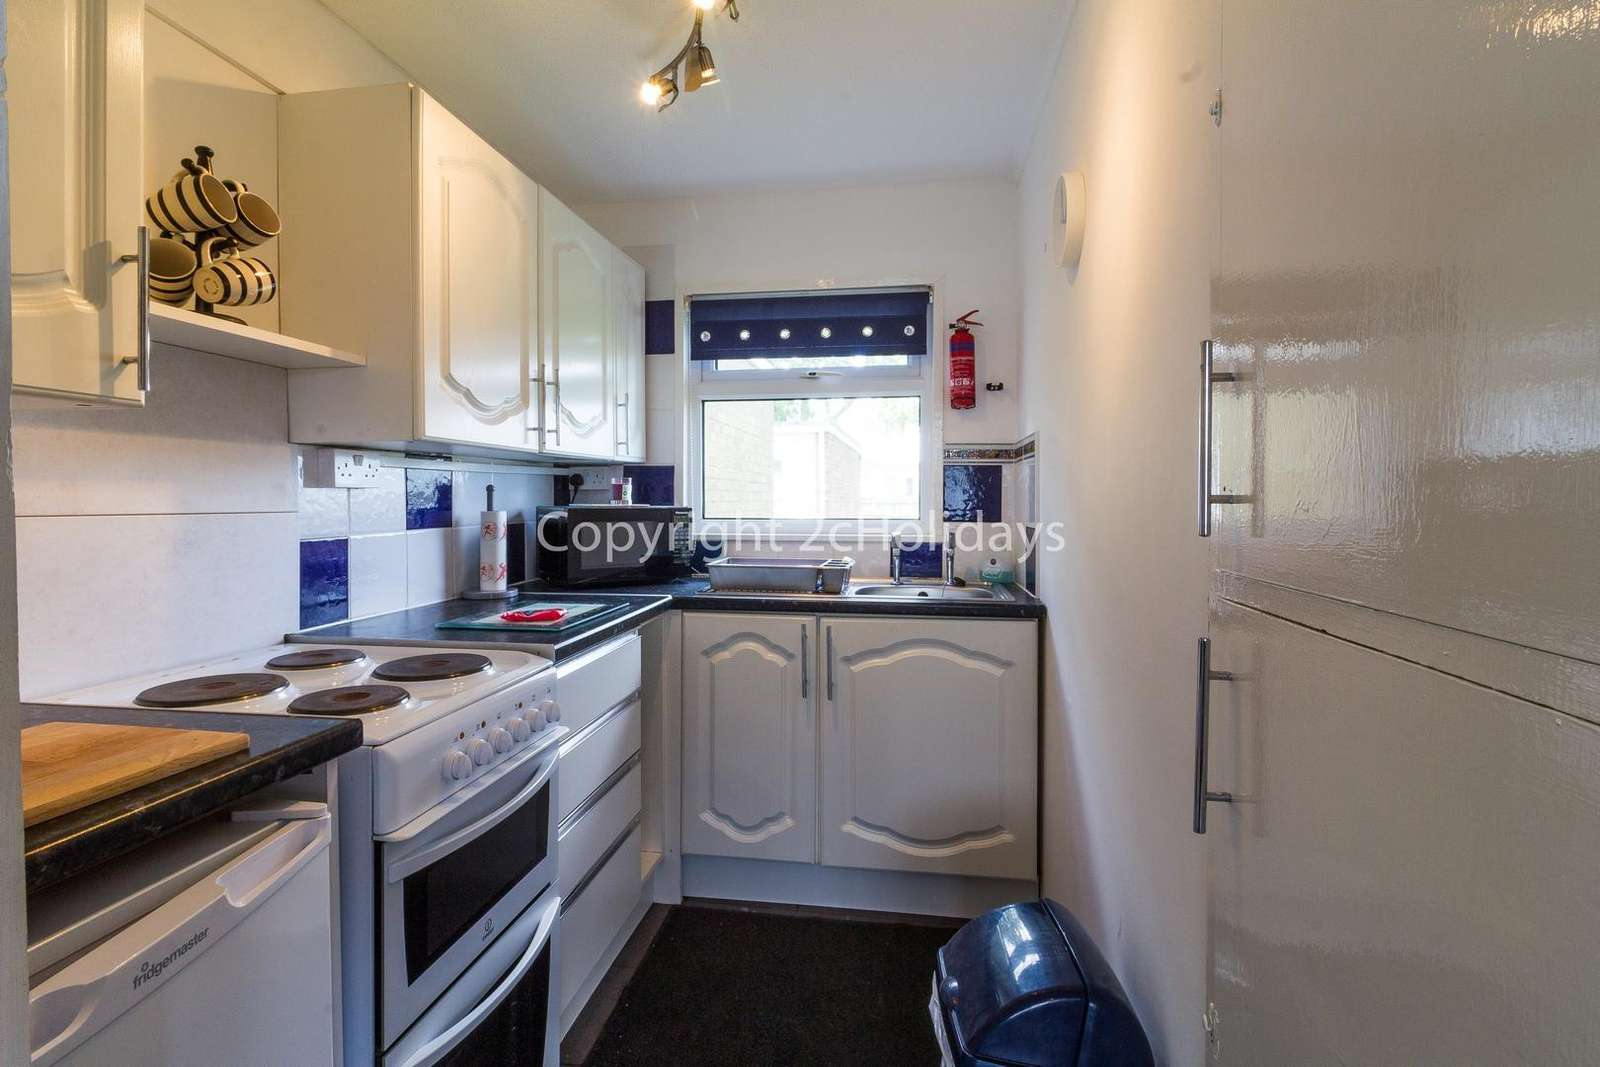 A well equipped kitchen, perfect for self-catering holidays